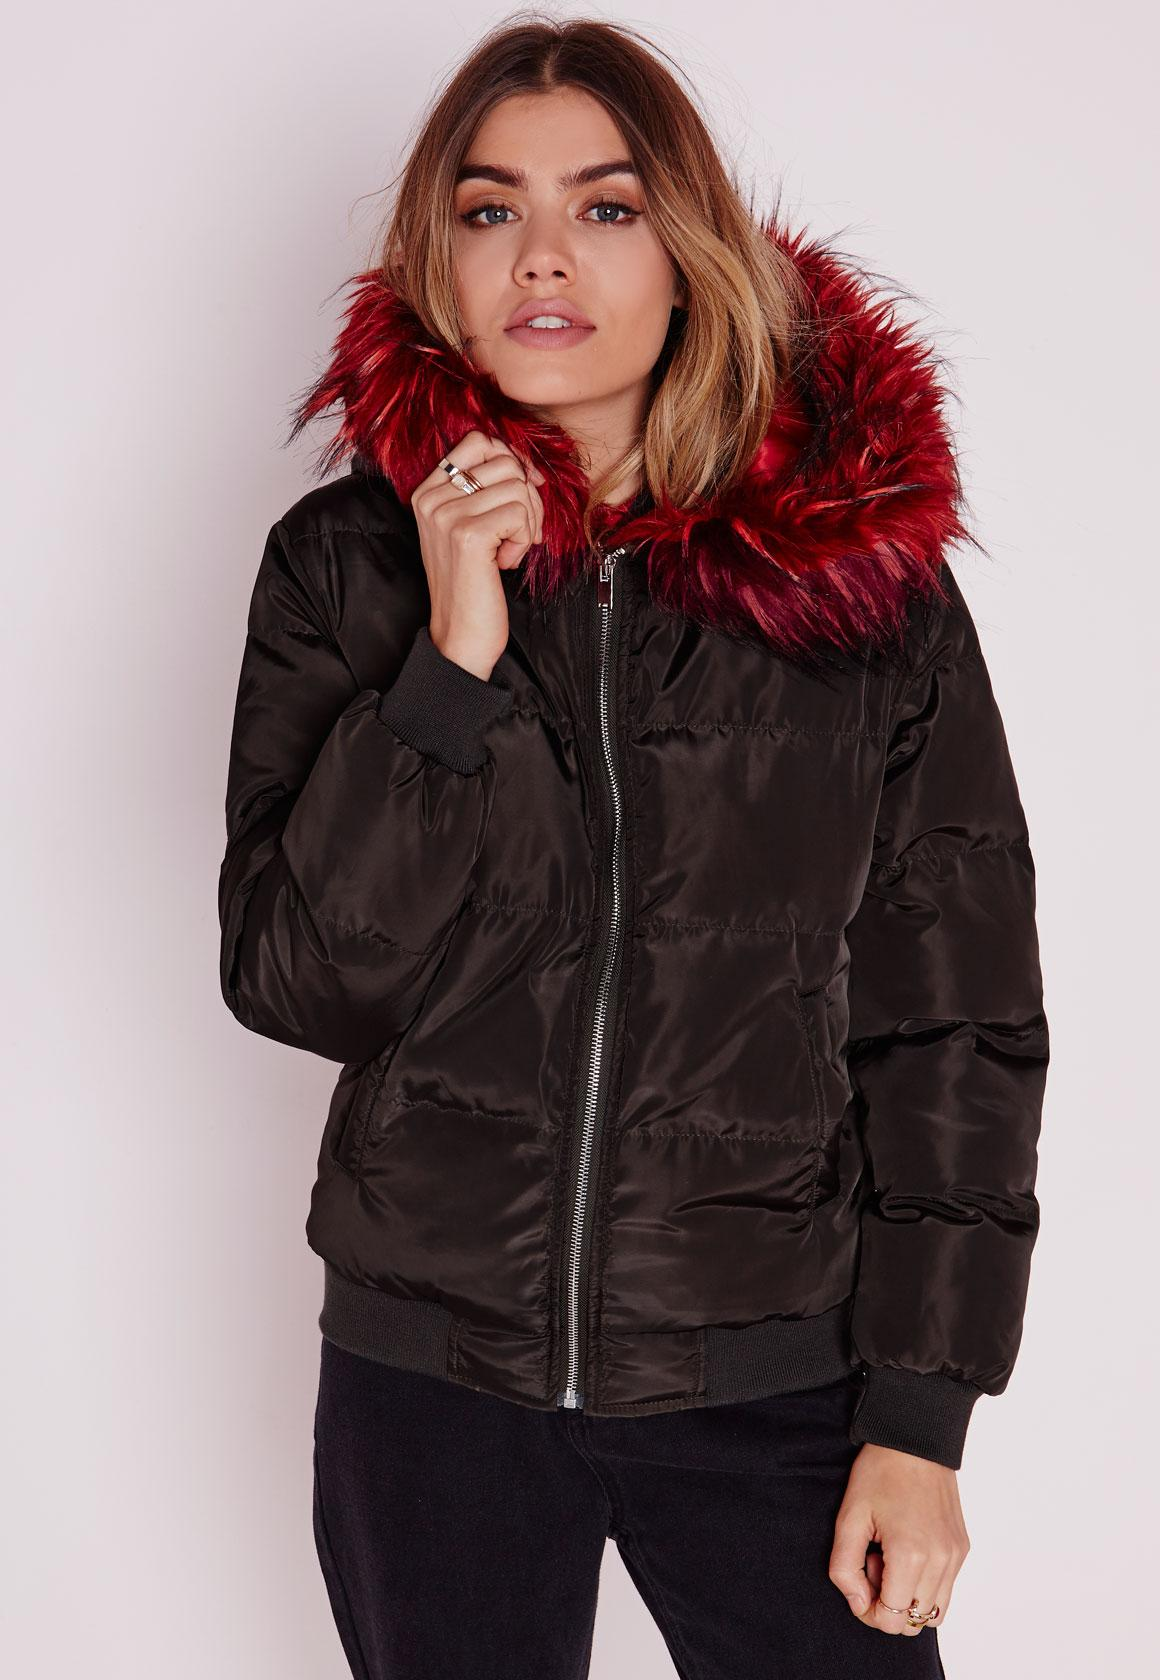 Padded Bomber Jacket with Contrast Fur Hood Khaki | Missguided